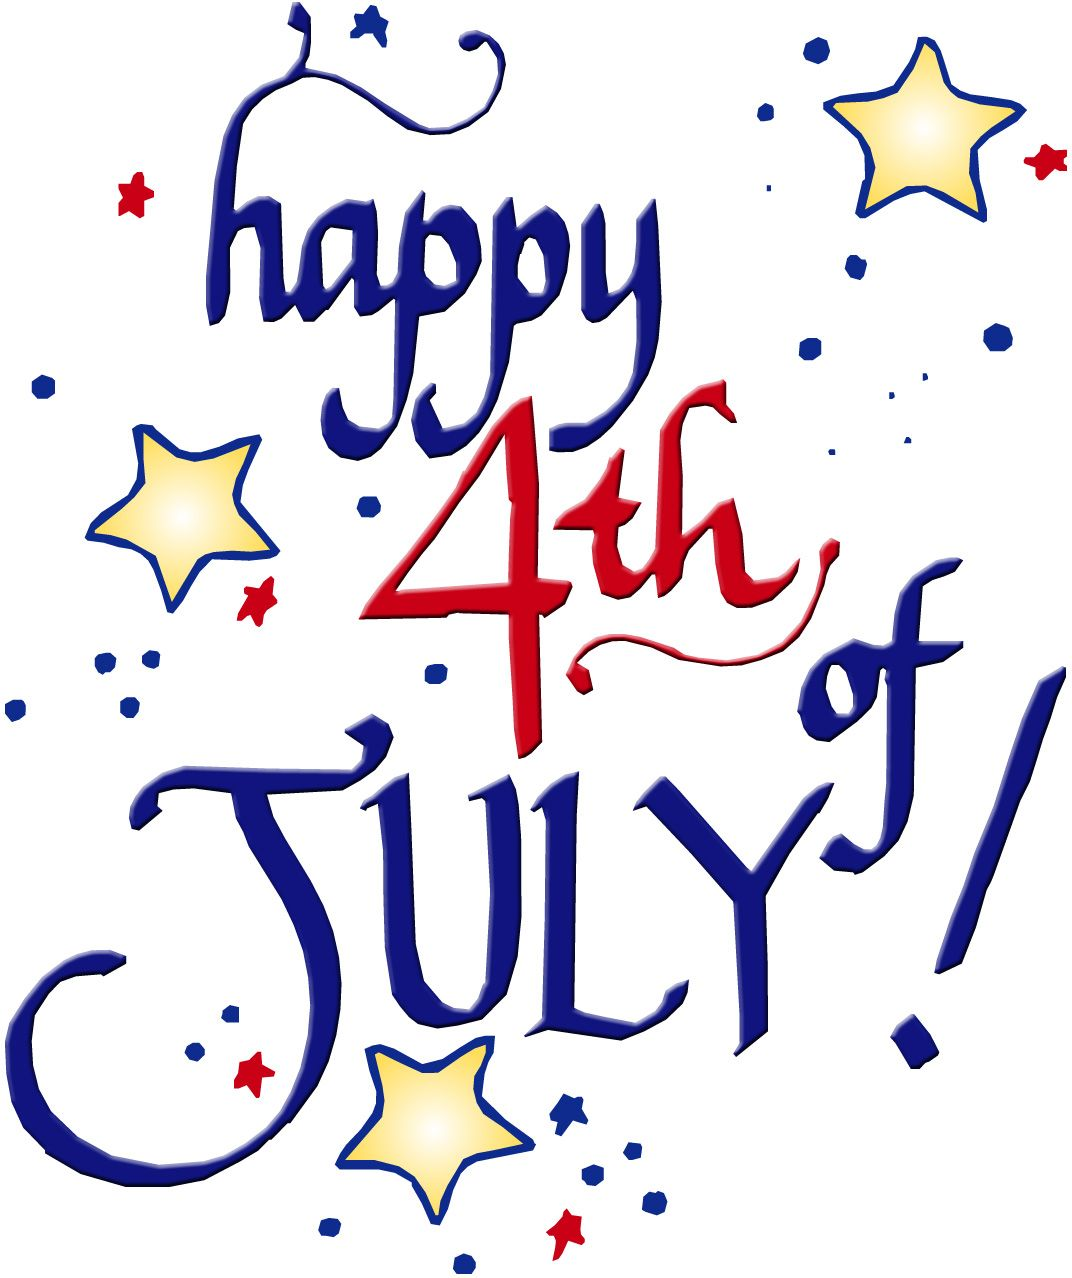 Buy Fourth Happy of july picture trends